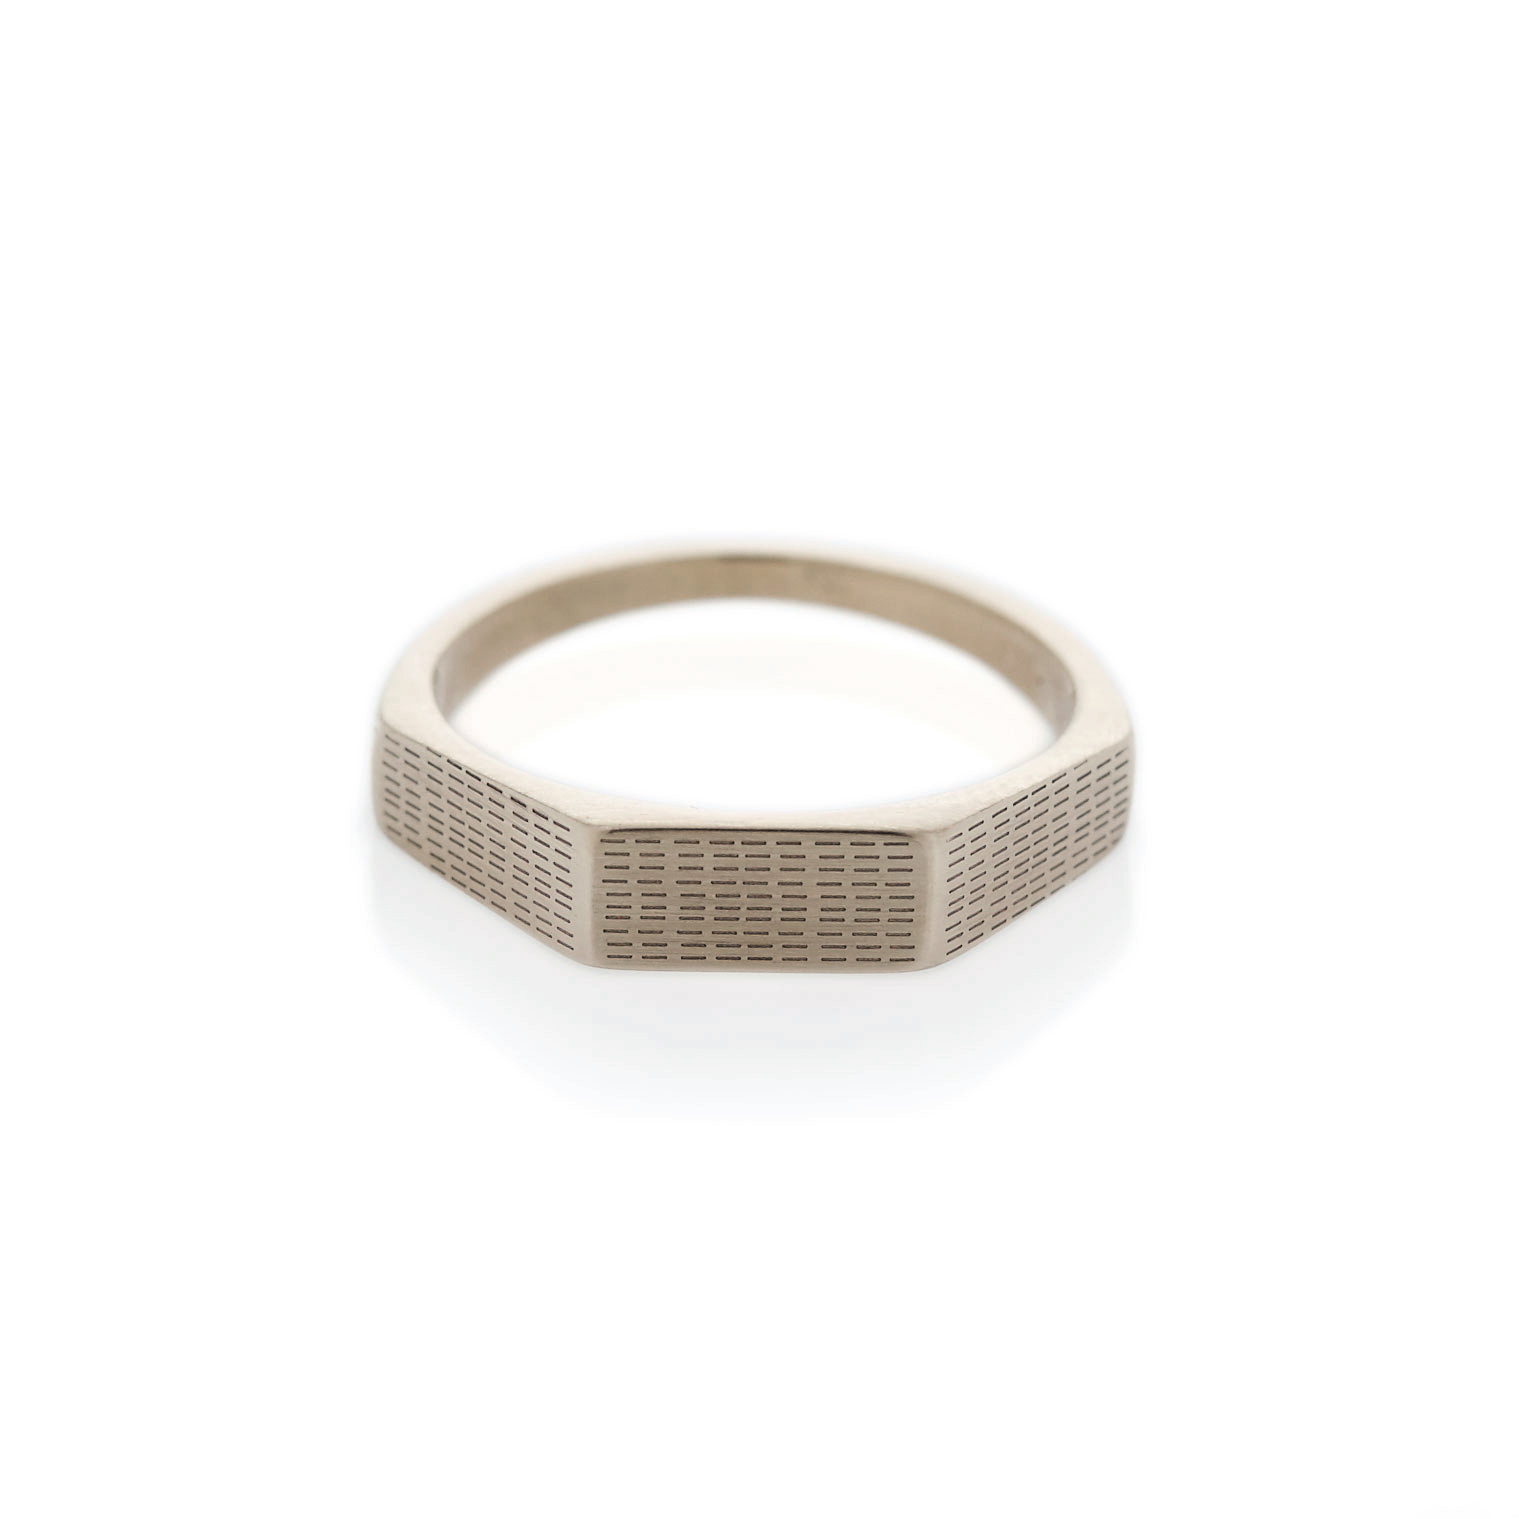 Horizontal rain three edge white gold signet ring